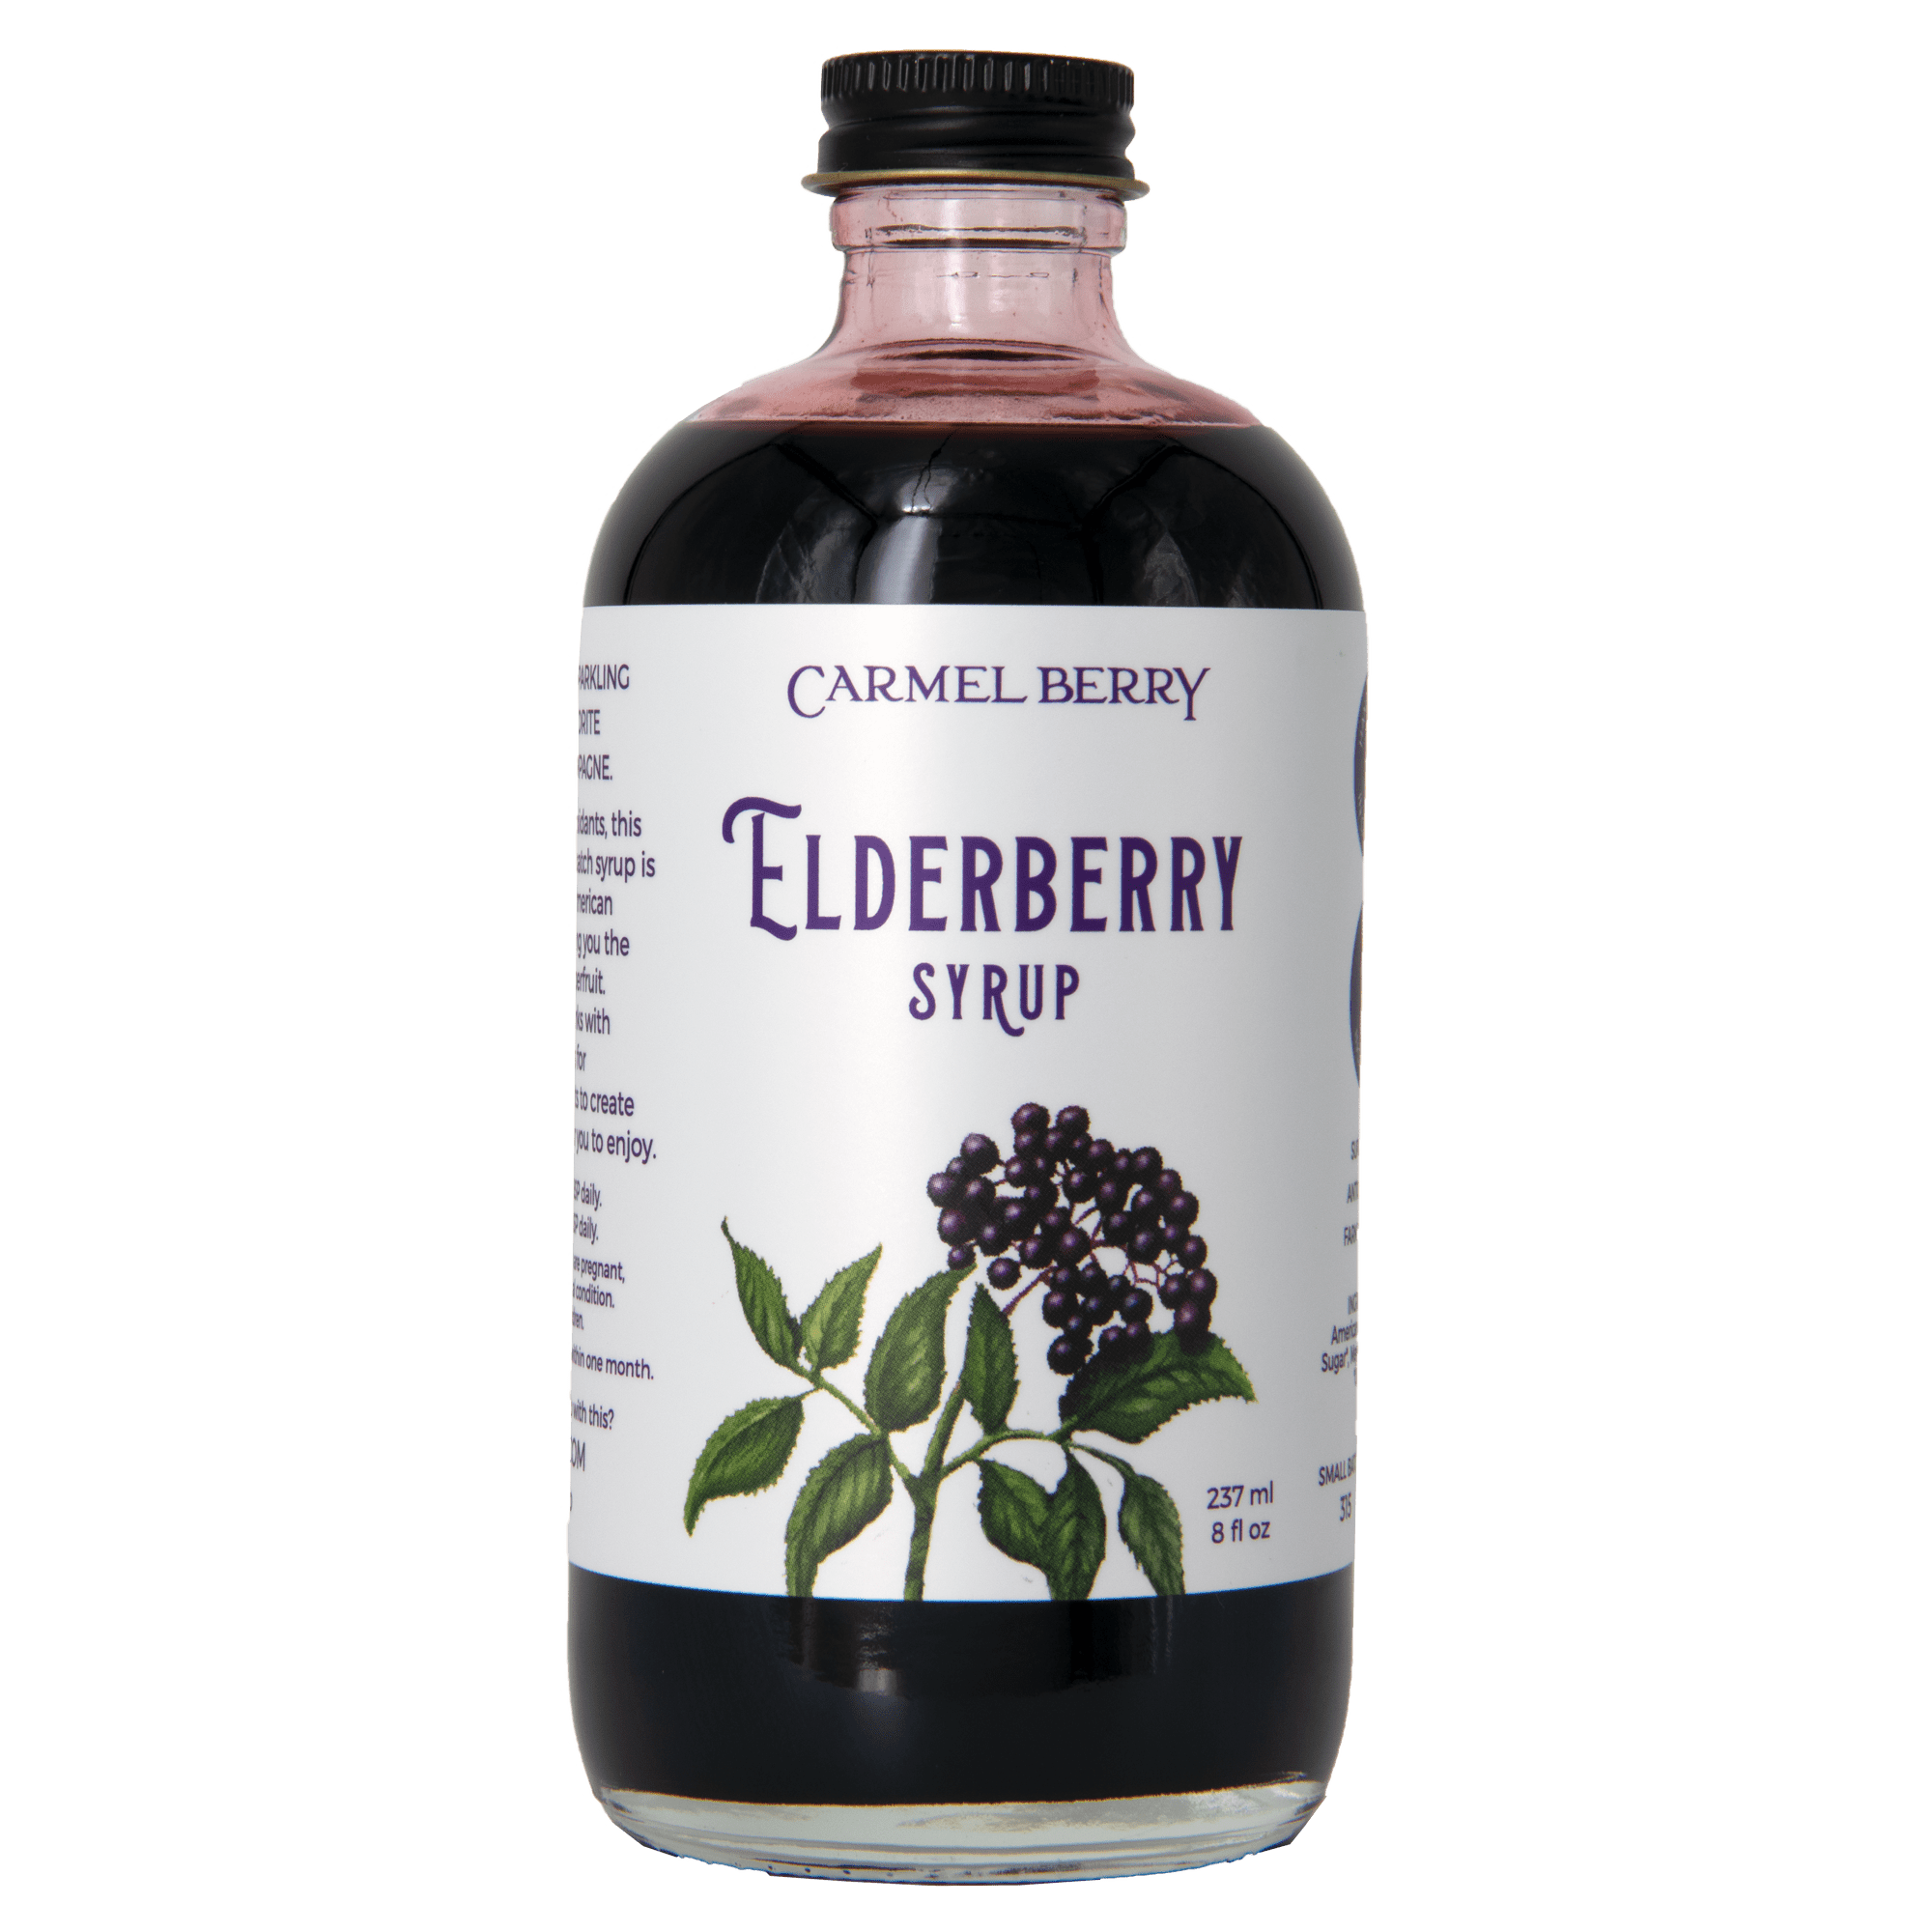 Elderberry Syrup - The Foodocracy